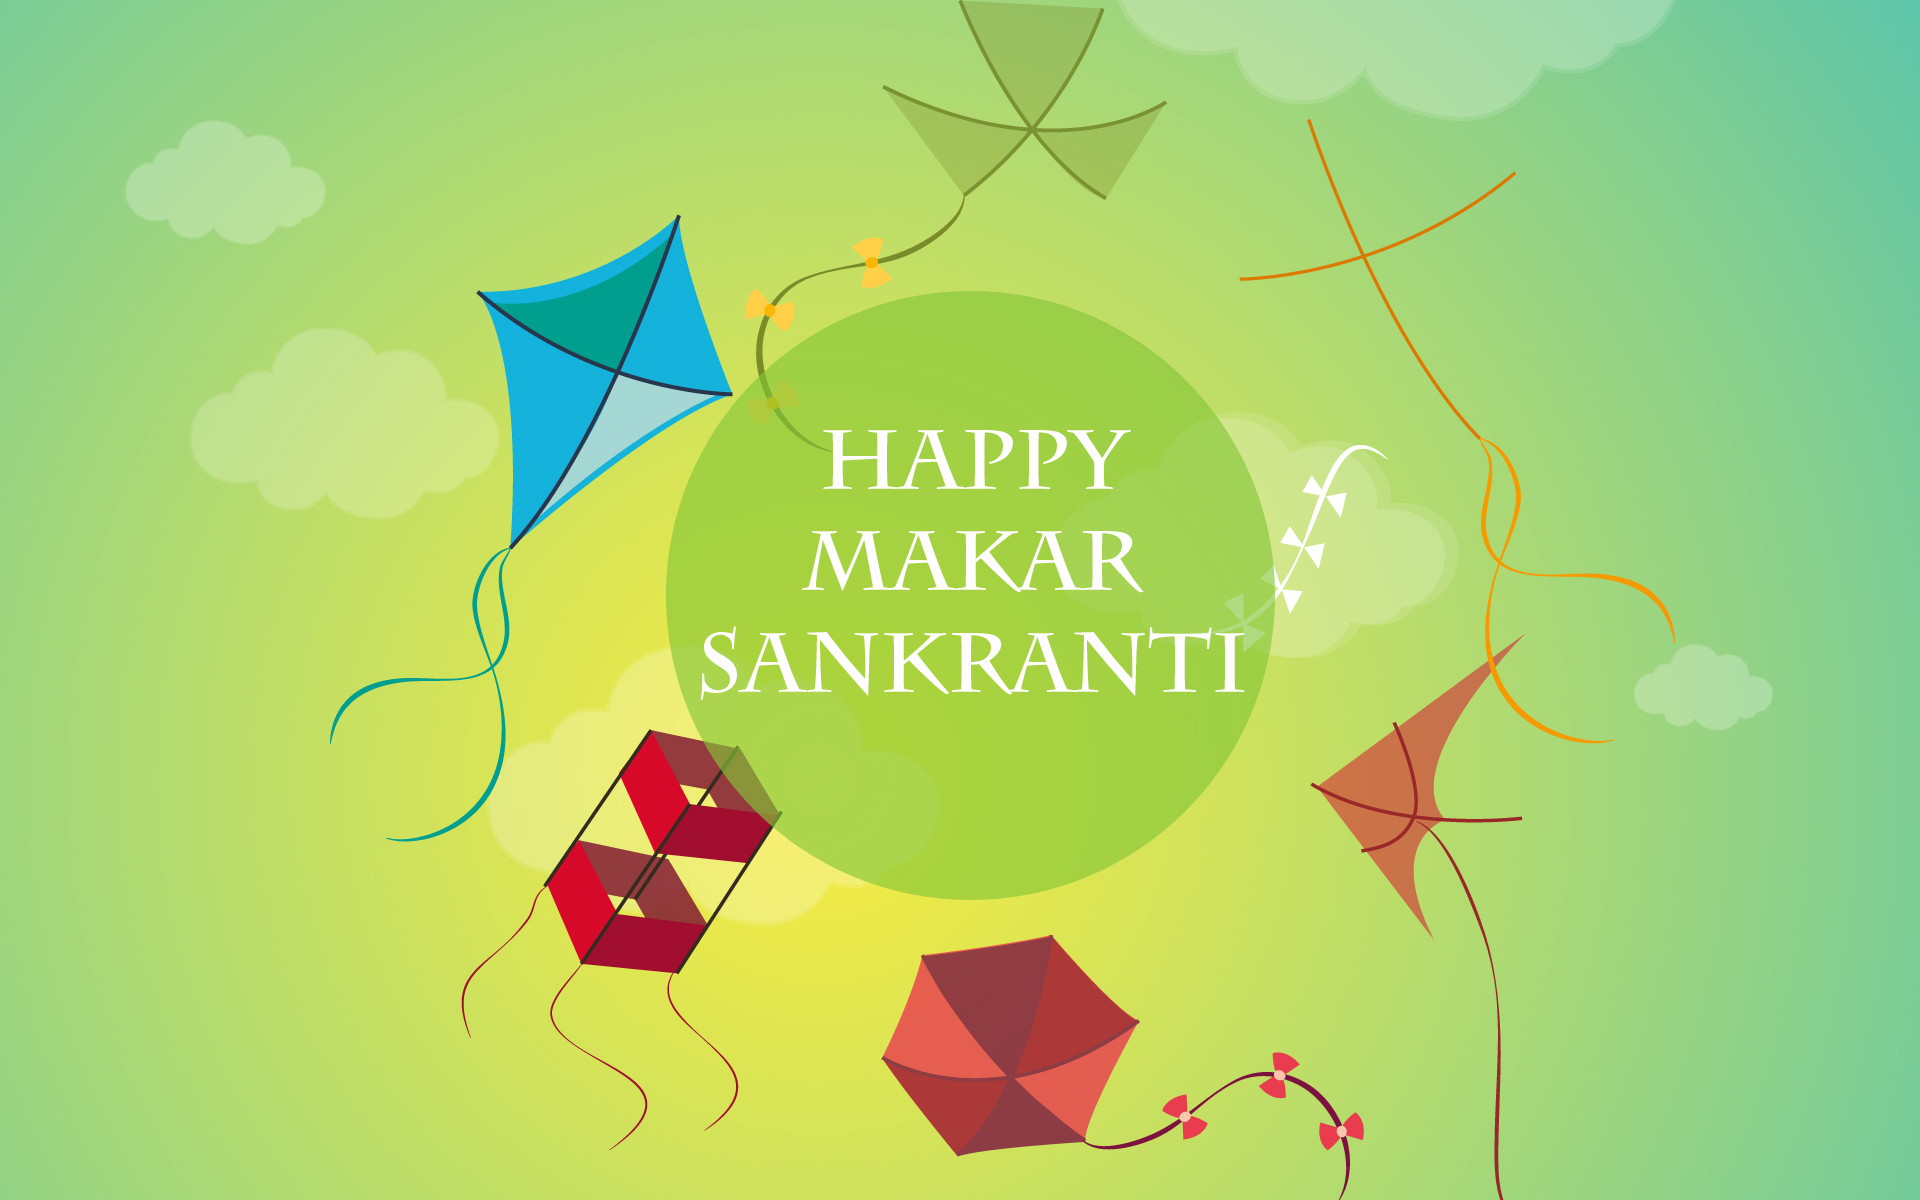 makar sankranti hd images - photo #12